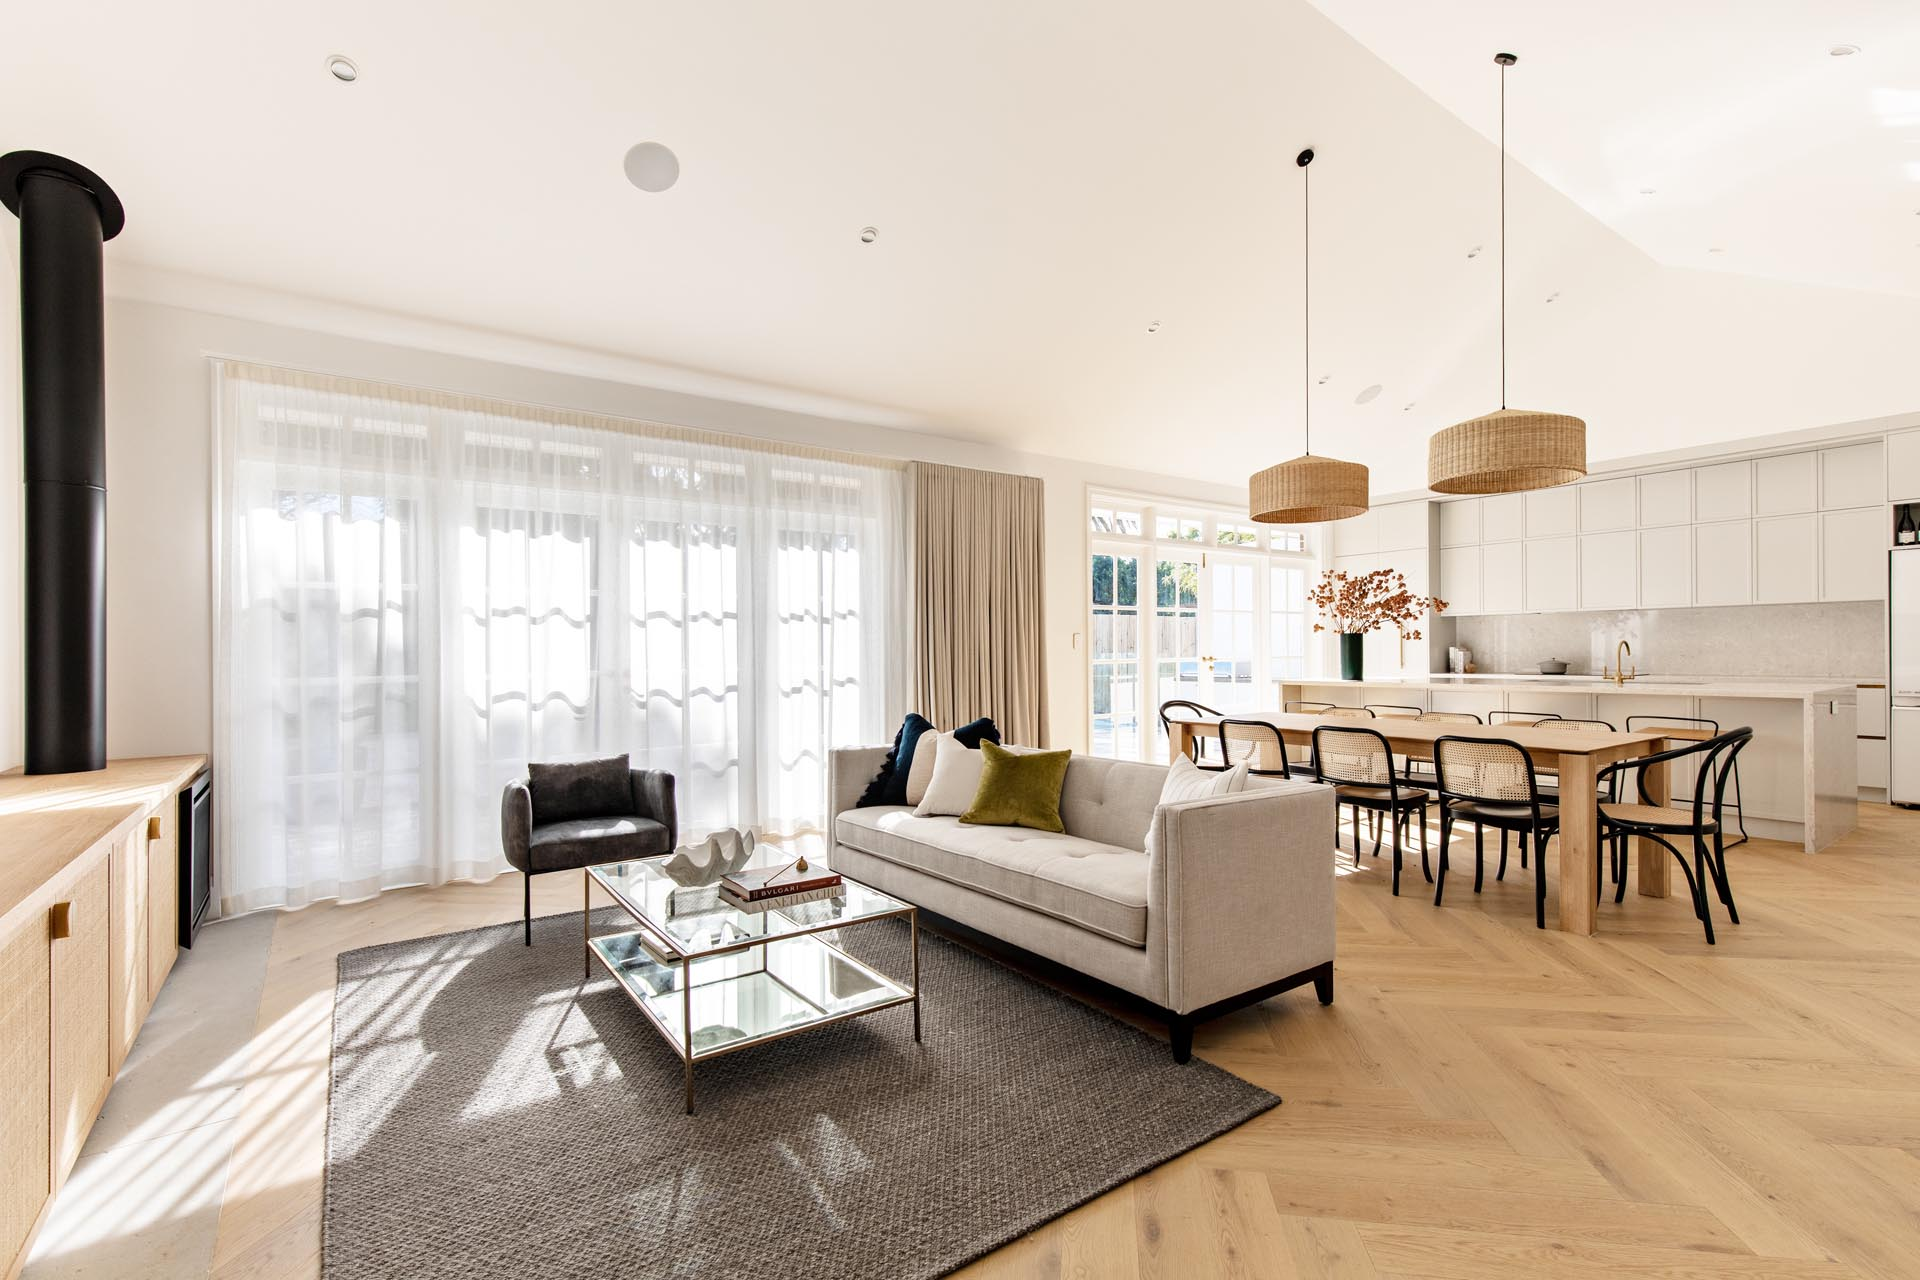 This contemporary open plan interior features a living room, dining area, and kitchen.